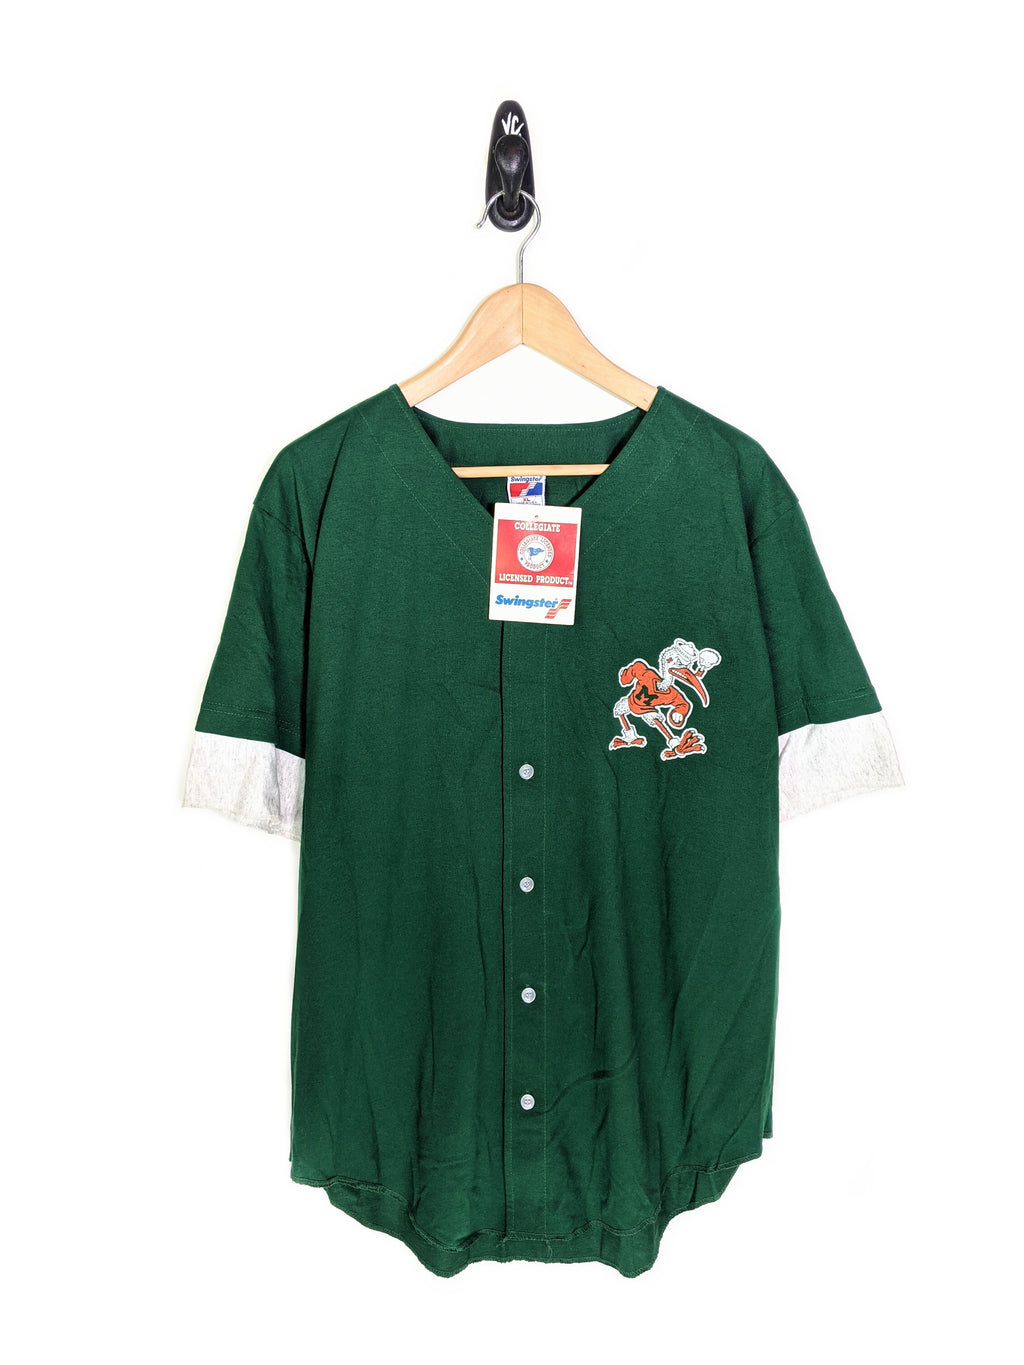 90's Miami Hurricanes Baseball Shirt (XXL)